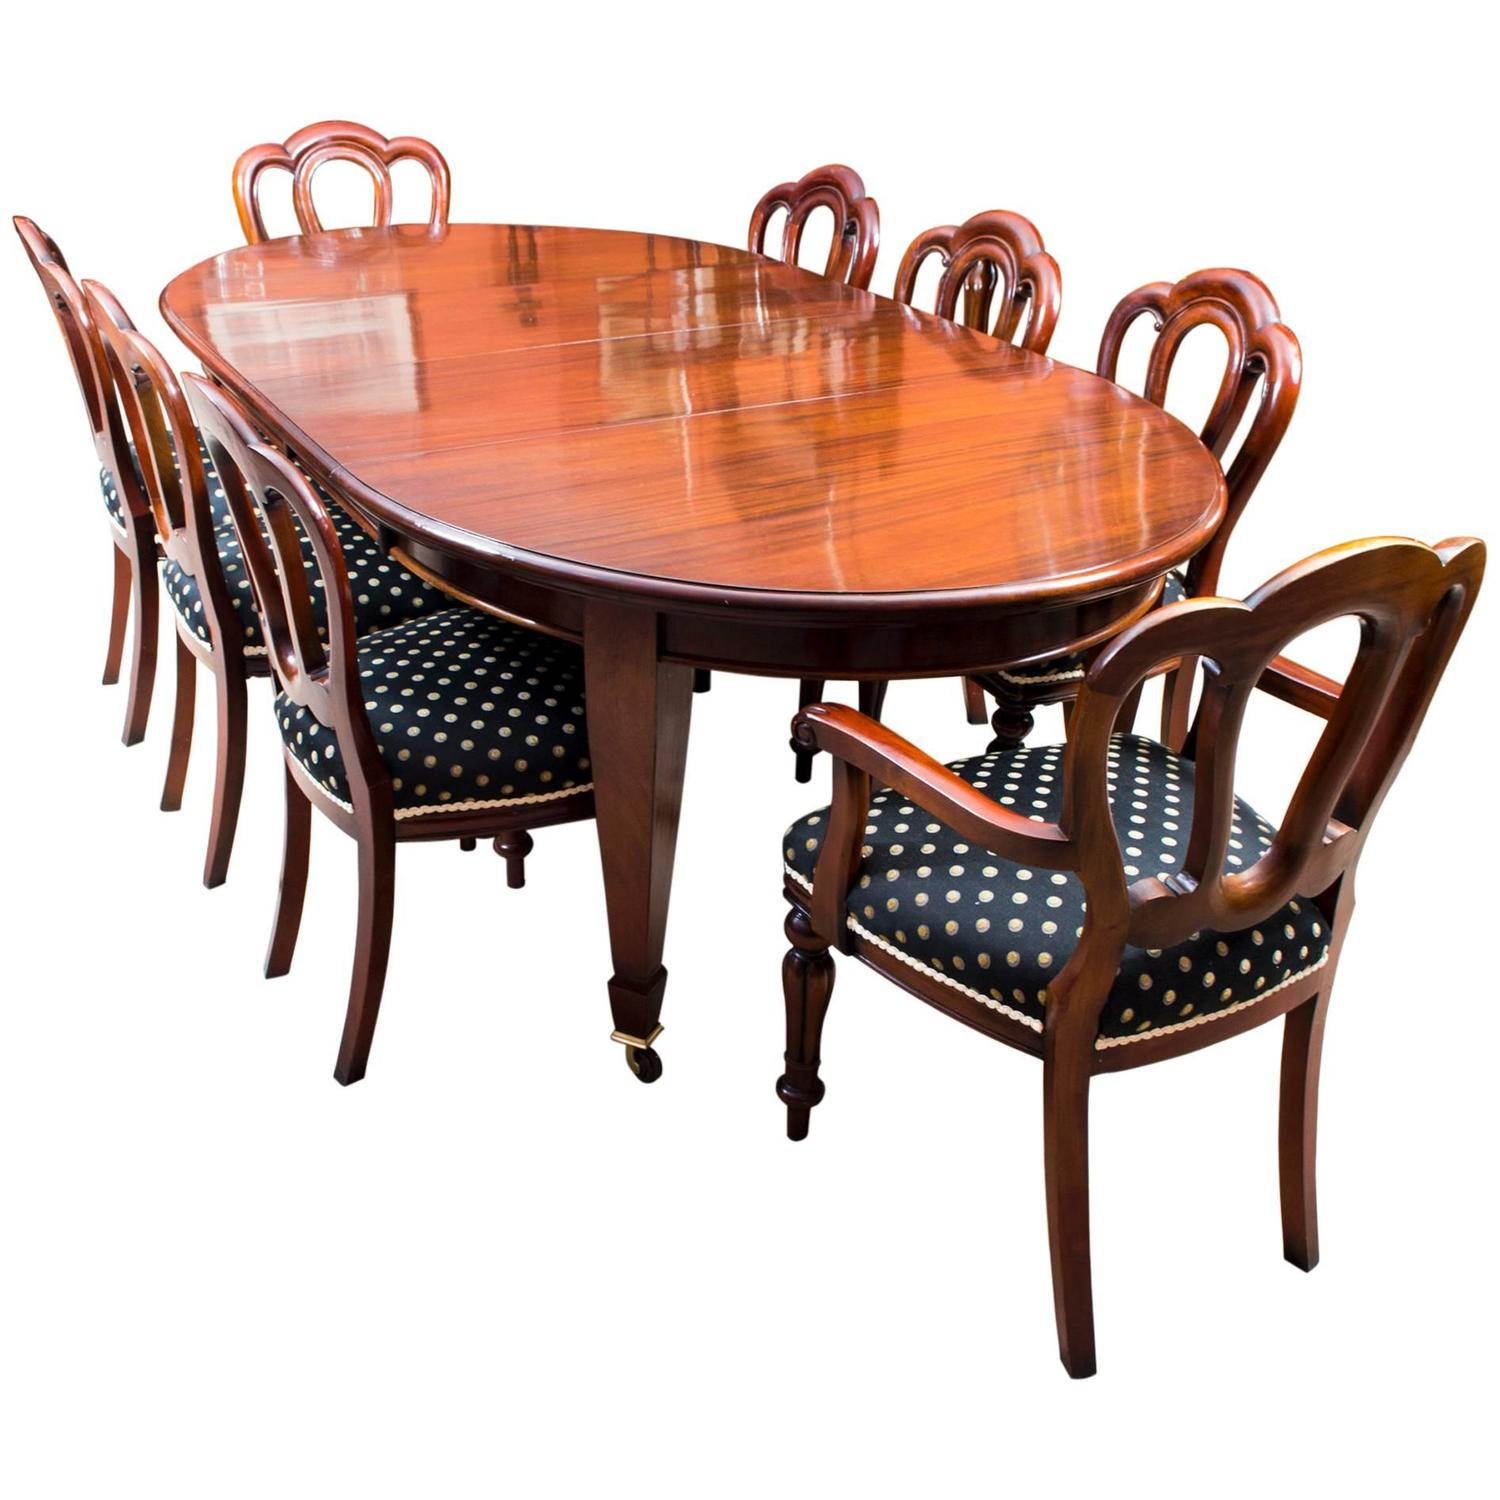 Vintage Dining Room Tables: Antique Edwardian Dining Table Eight Chairs, Circa 1900 At